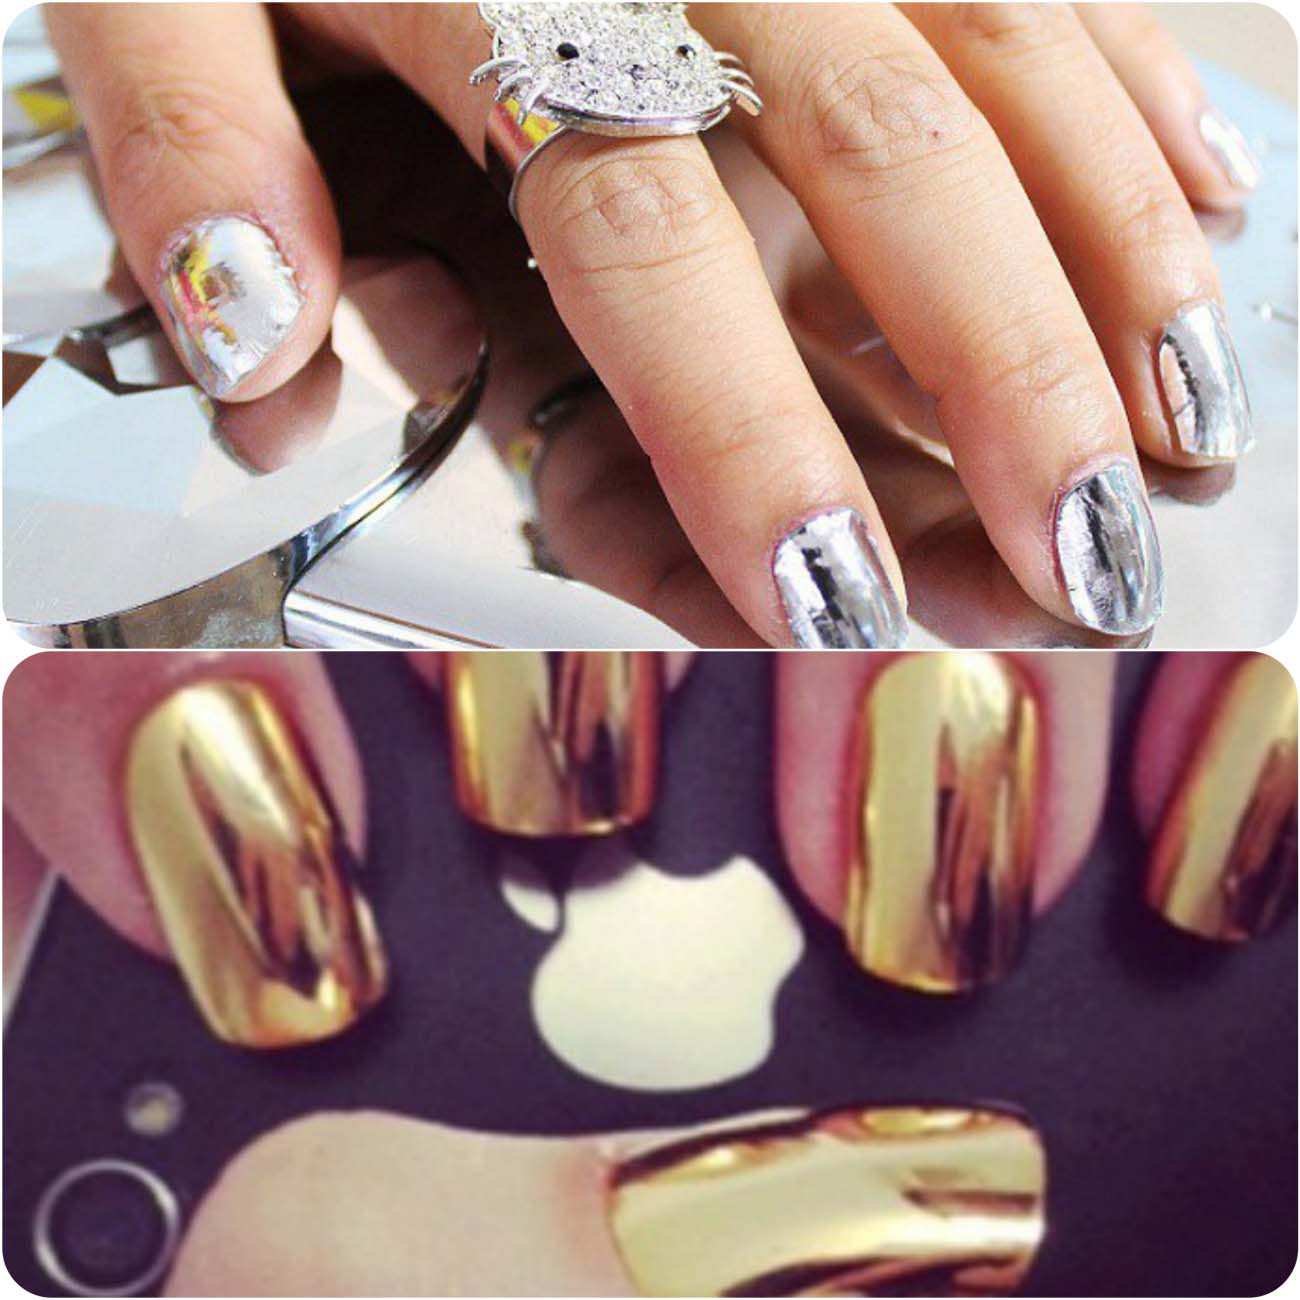 Best Dazzling Reflecting Nail Art Designs For Girls....styloplanet (15)